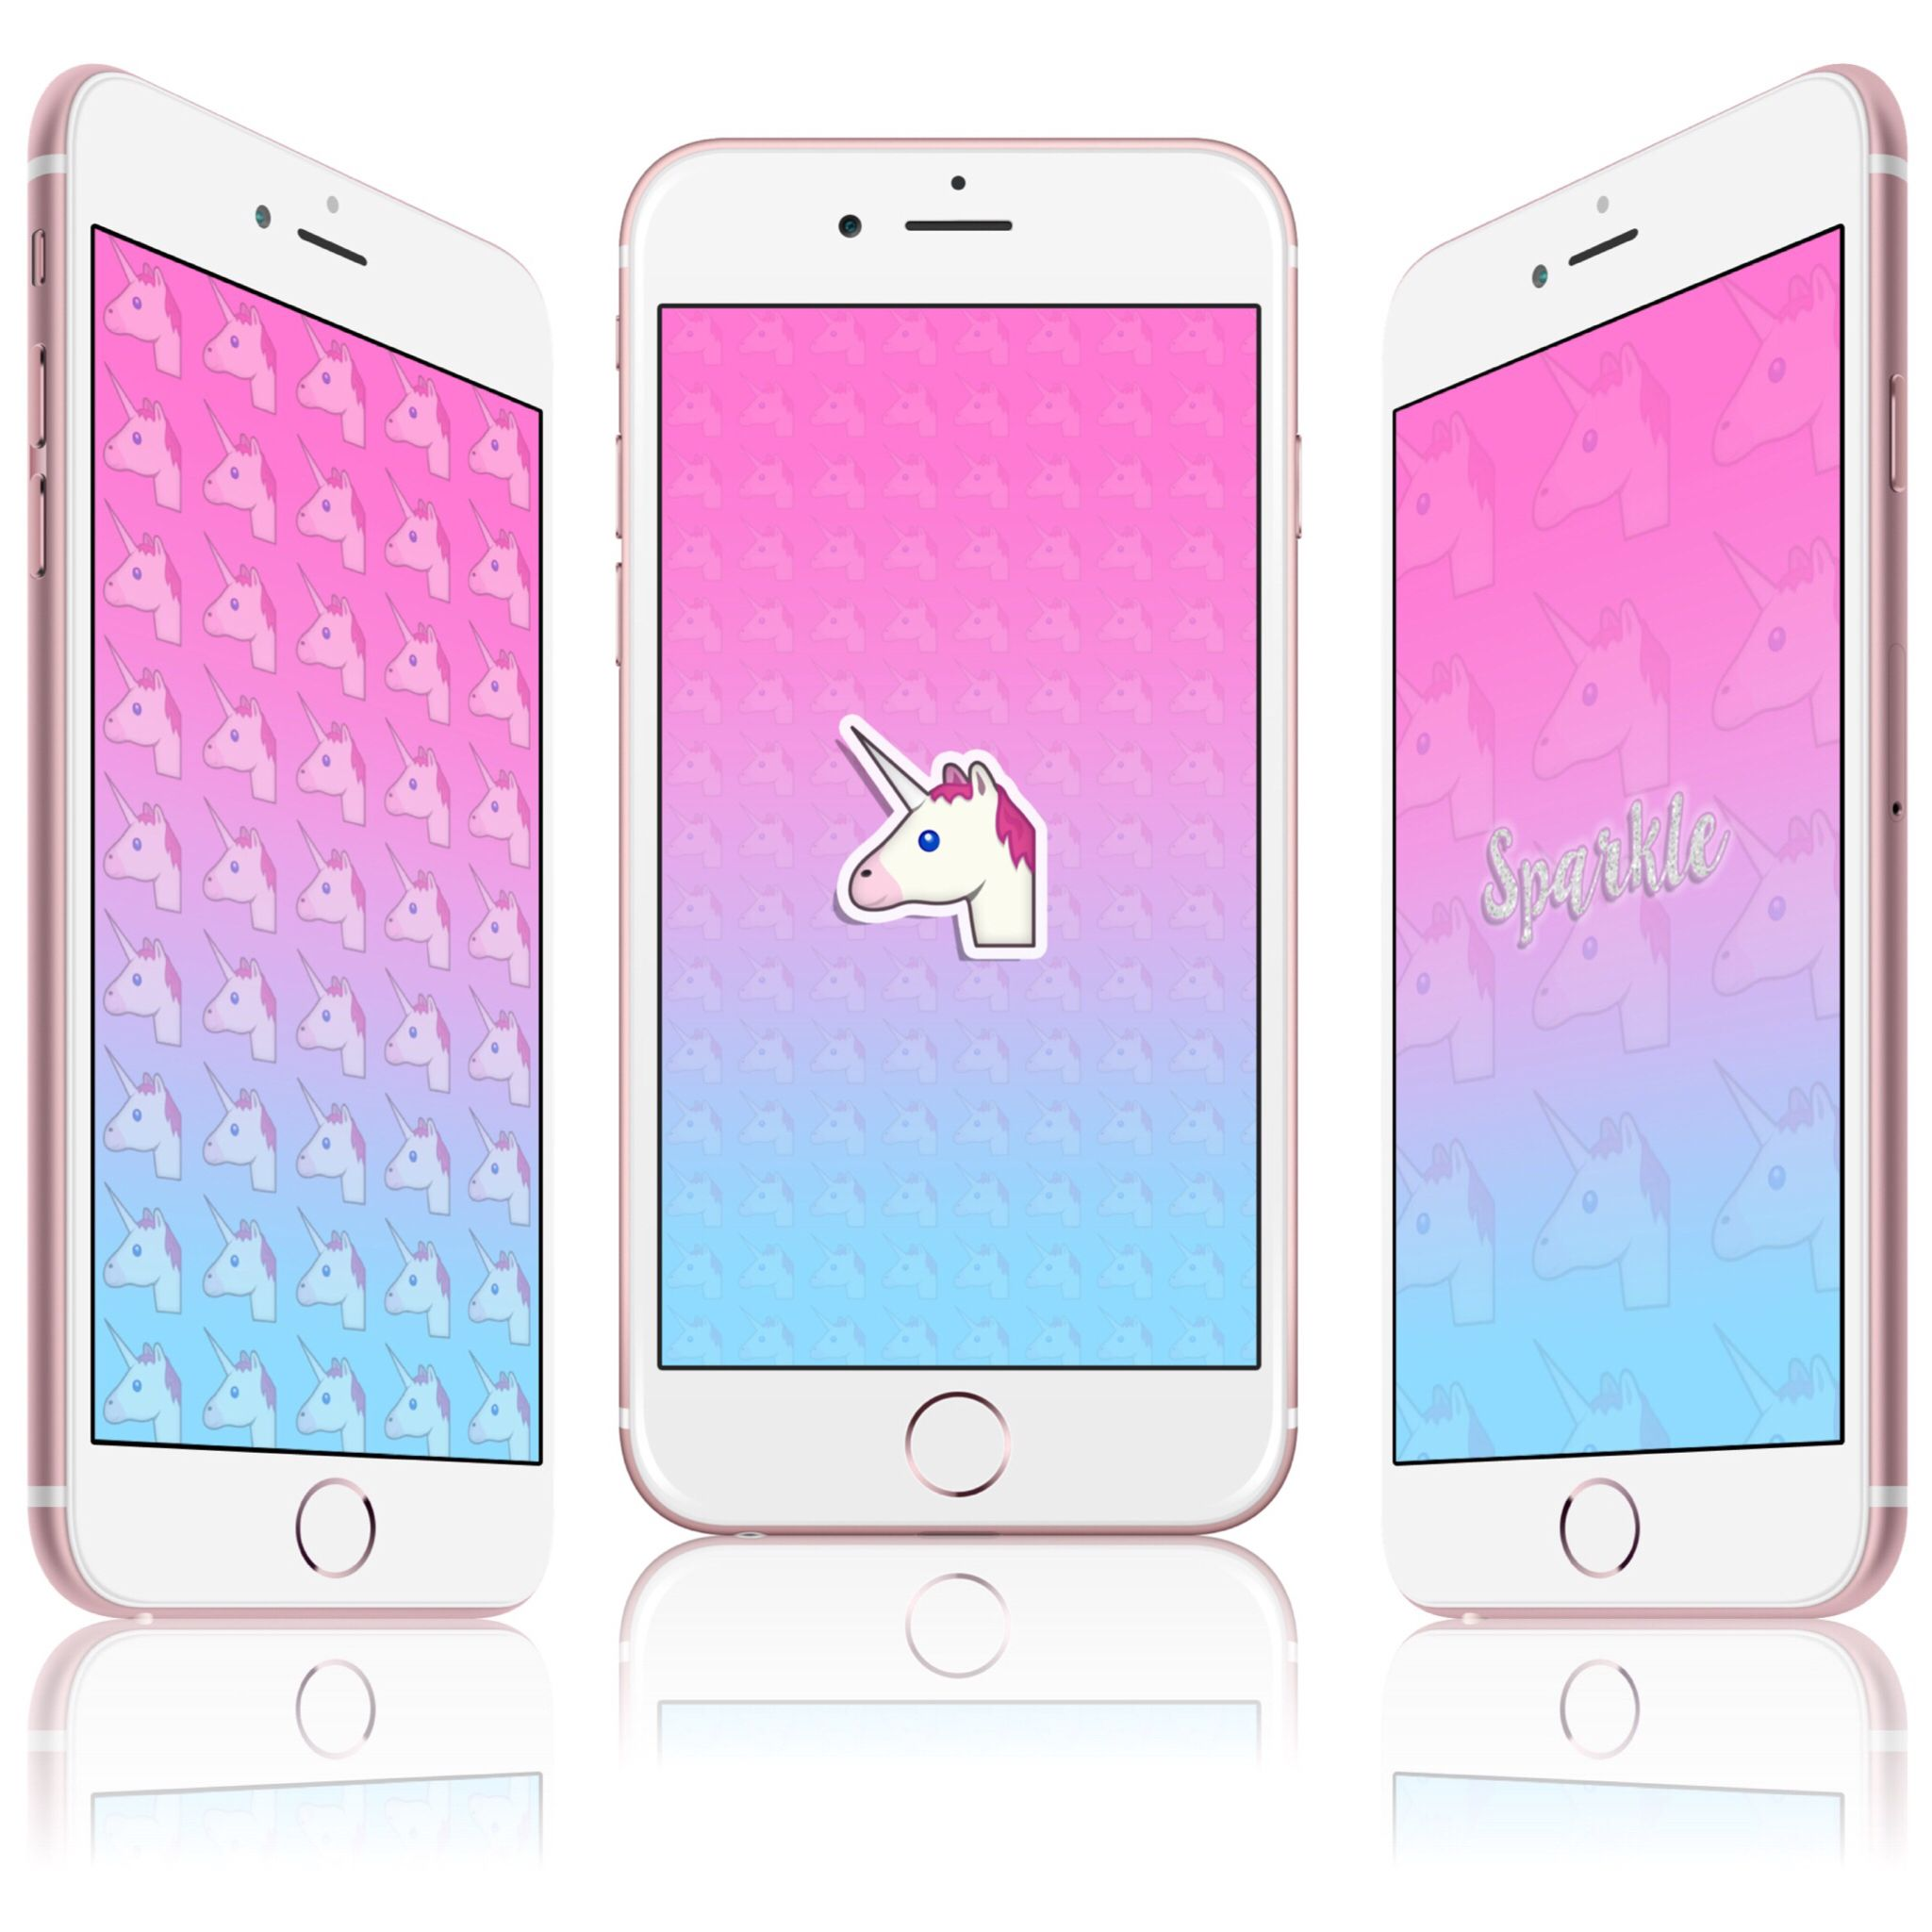 3 Unicorn wallpapers now on my blog (press image to be